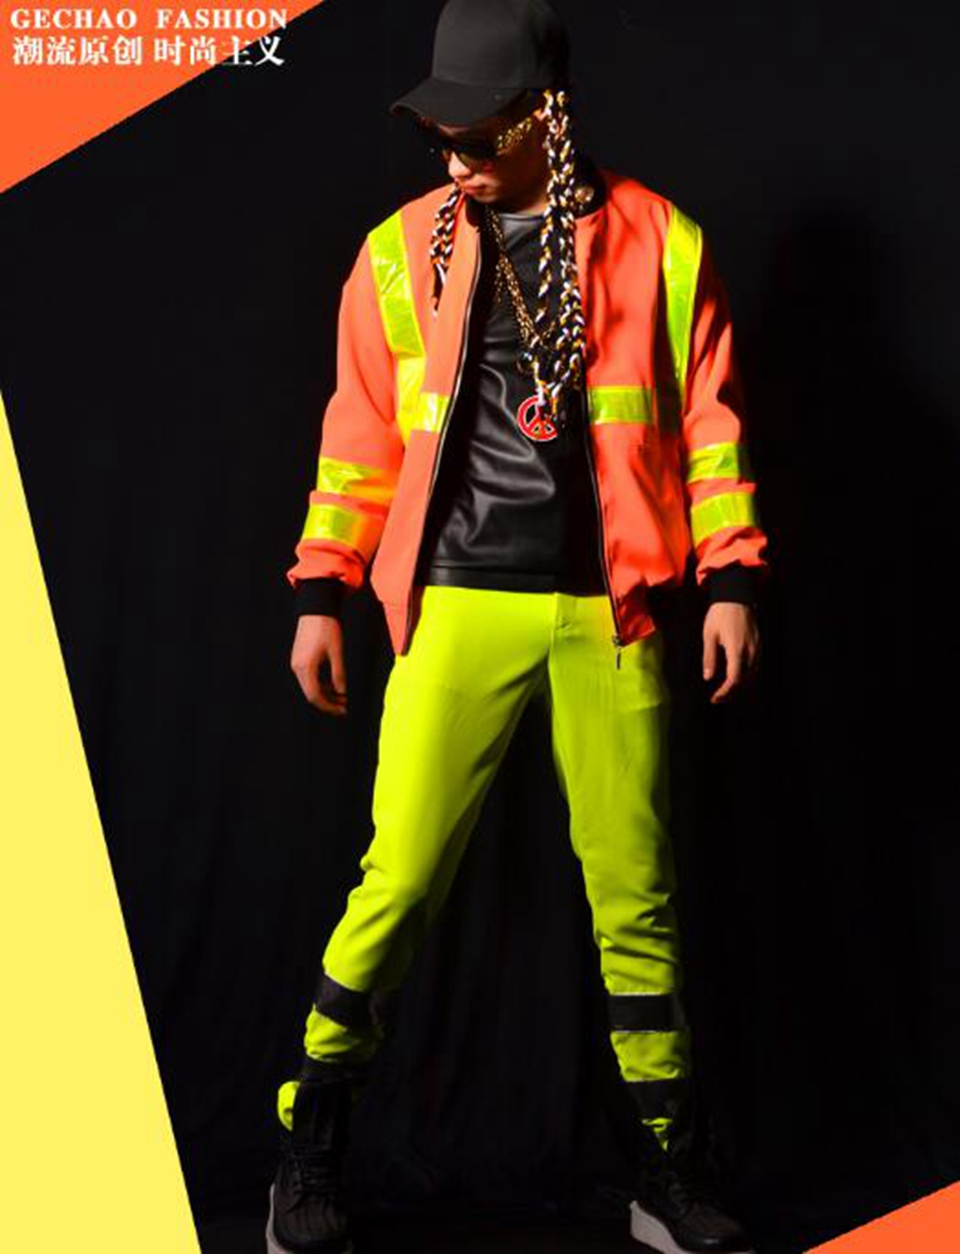 Mens new European and American fashion boutique singer host costumes of England article reflective baseball suit / M-2xL